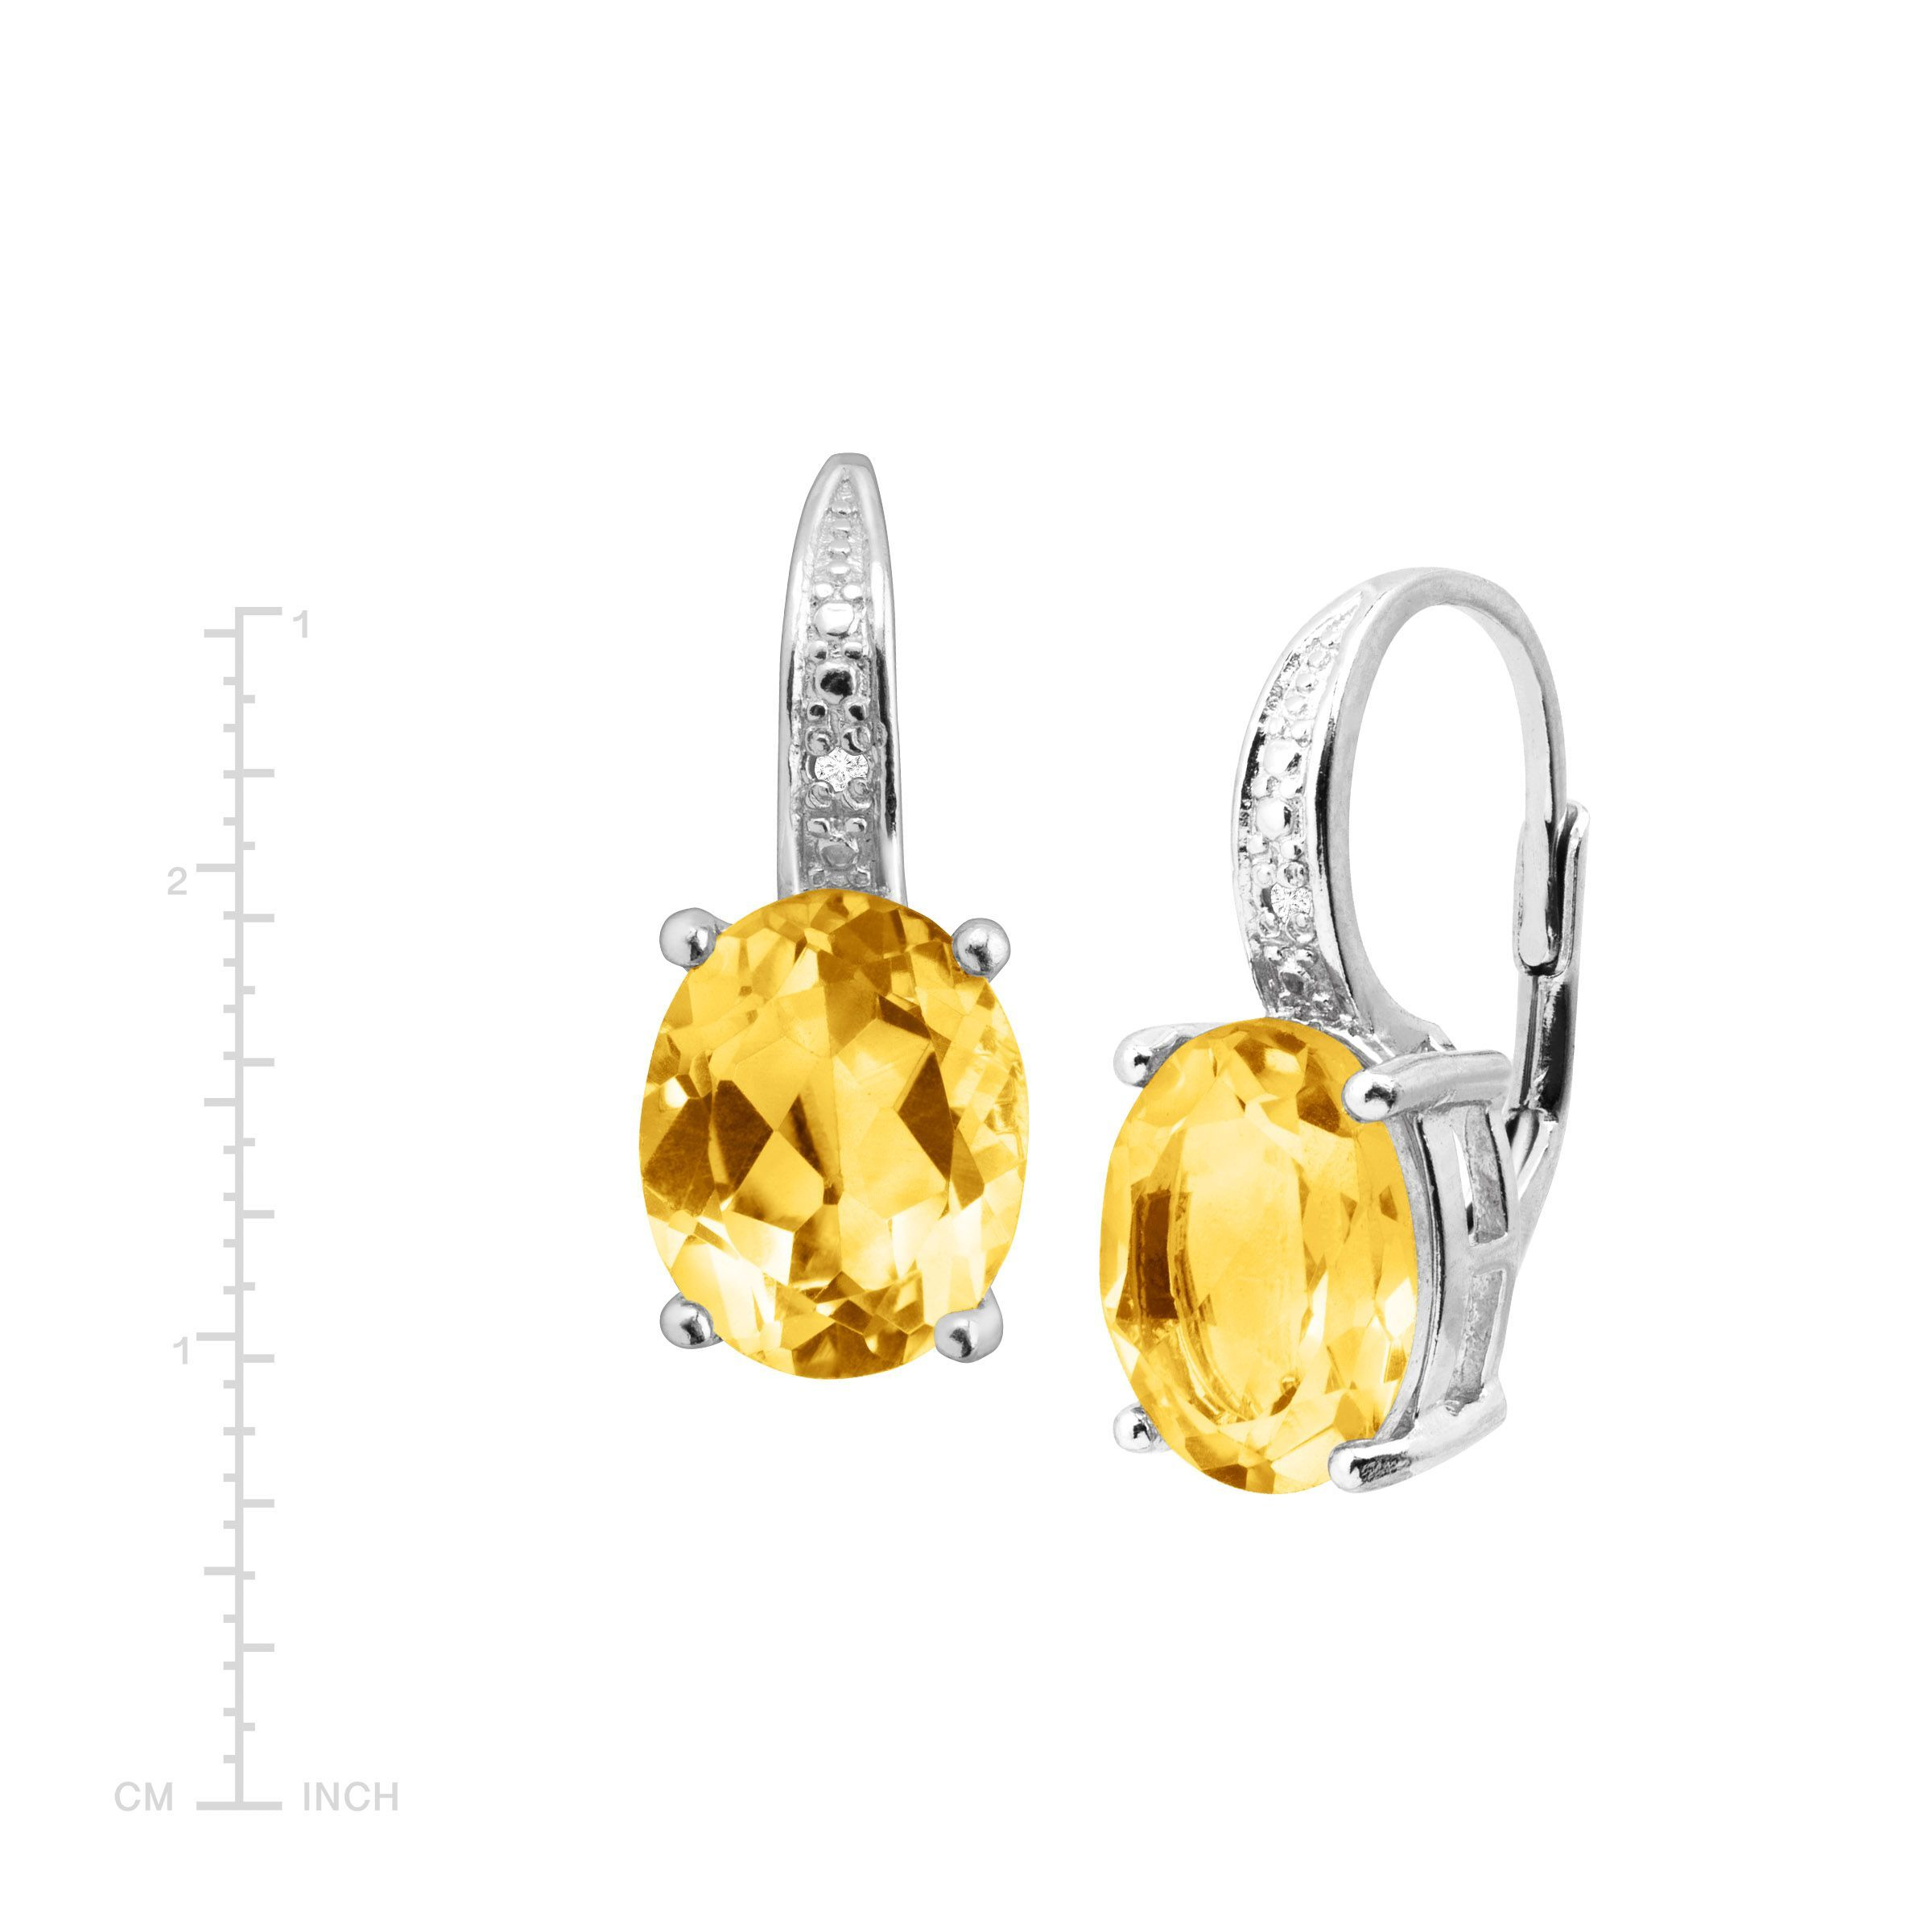 Natural-Gemstone-Drop-Earrings-with-Diamonds-in-Sterling-Silver thumbnail 20